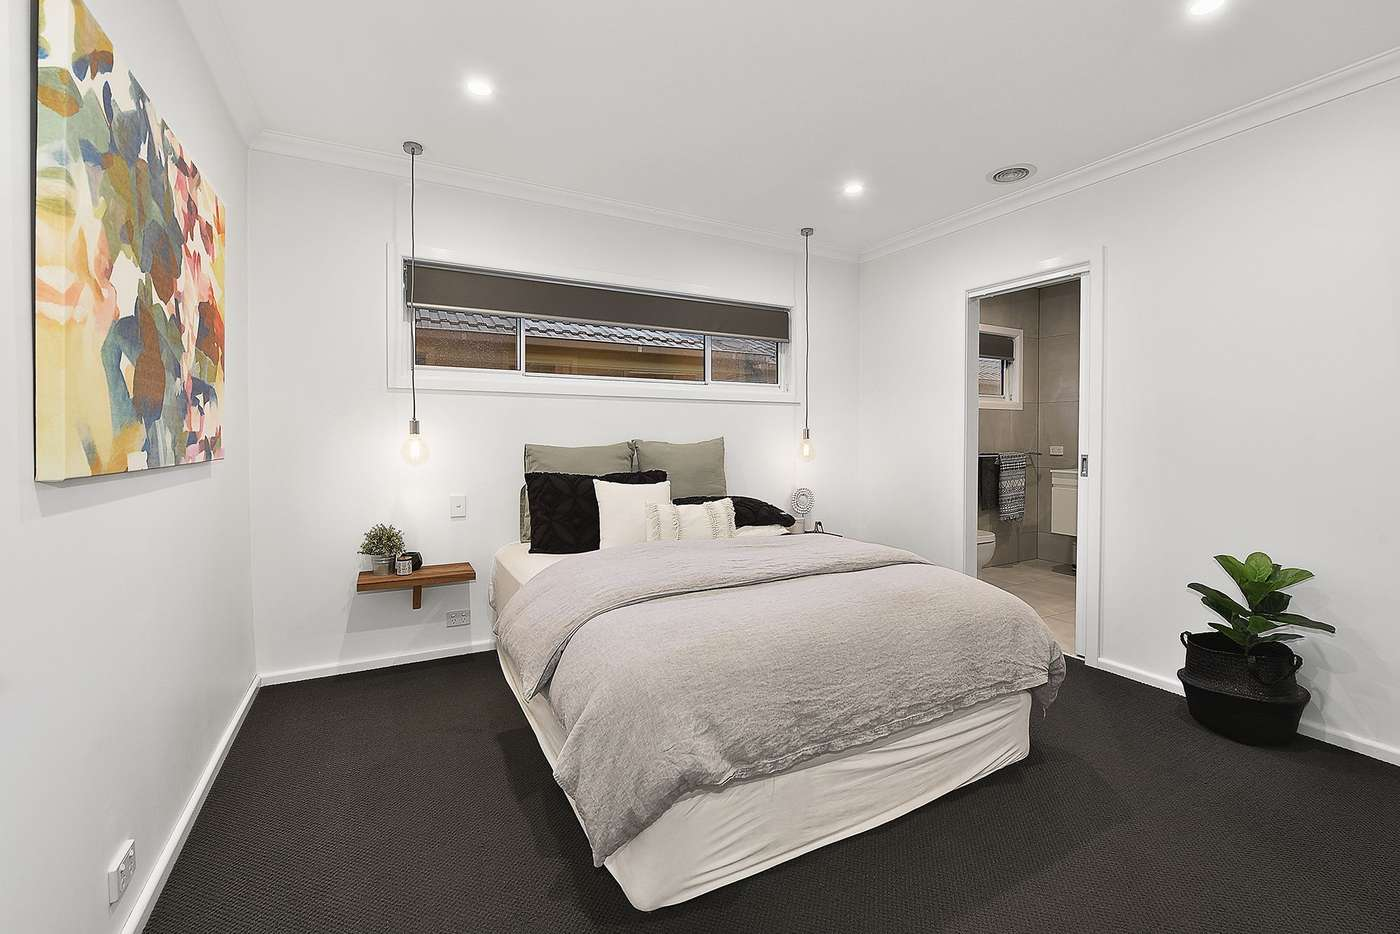 Fifth view of Homely house listing, 25 Ian Crescent, Airport West VIC 3042